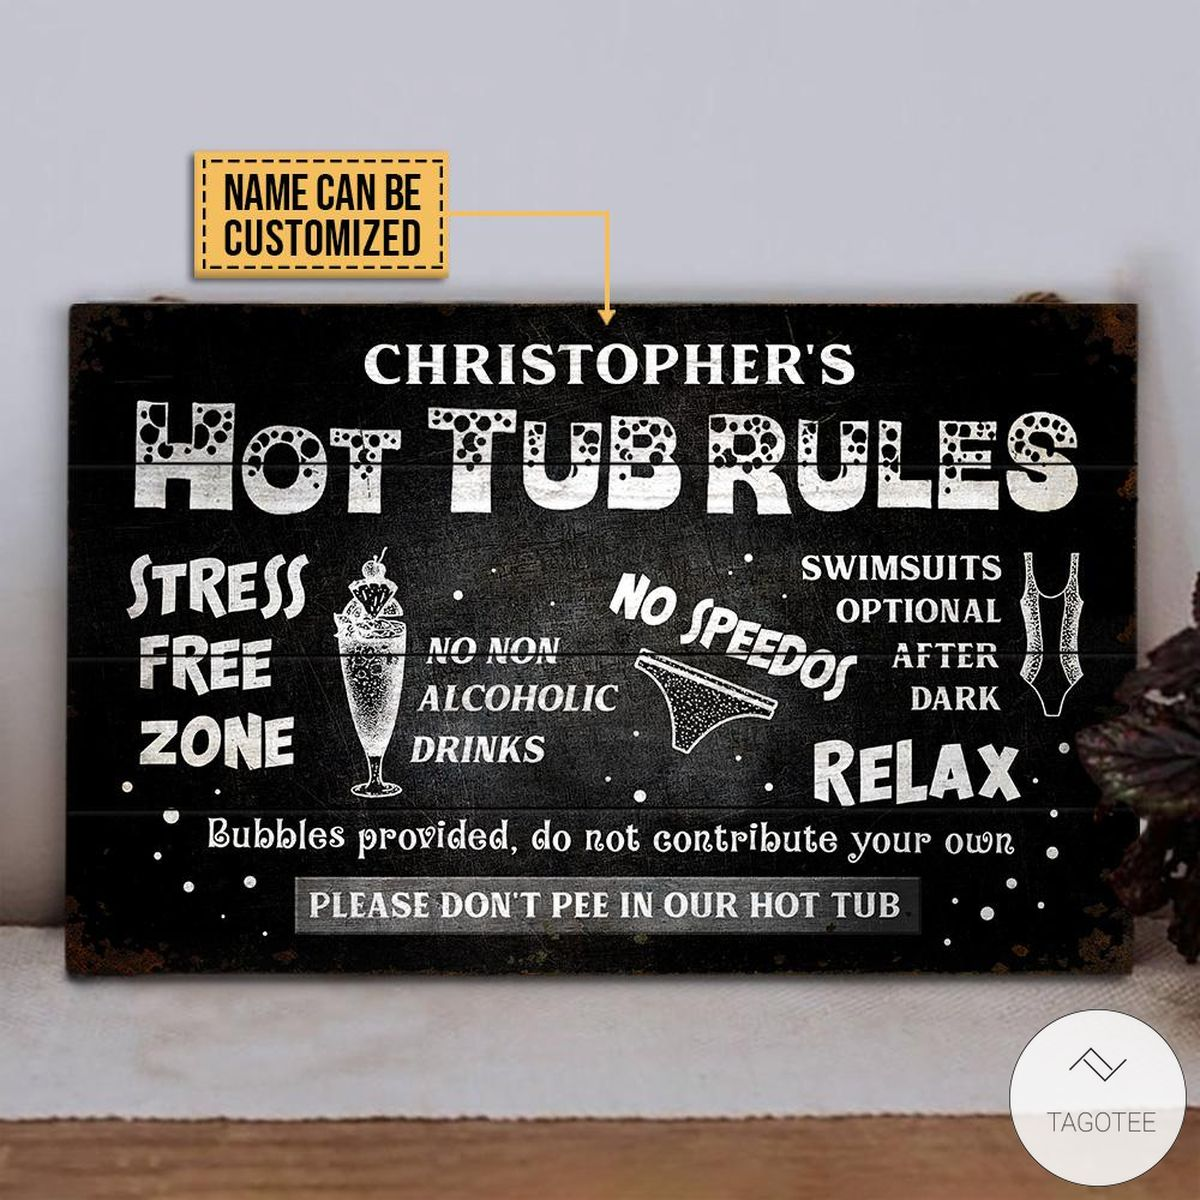 Personalized Hot Tub Rules Stress Free Zone Rectangle Wood Sign x